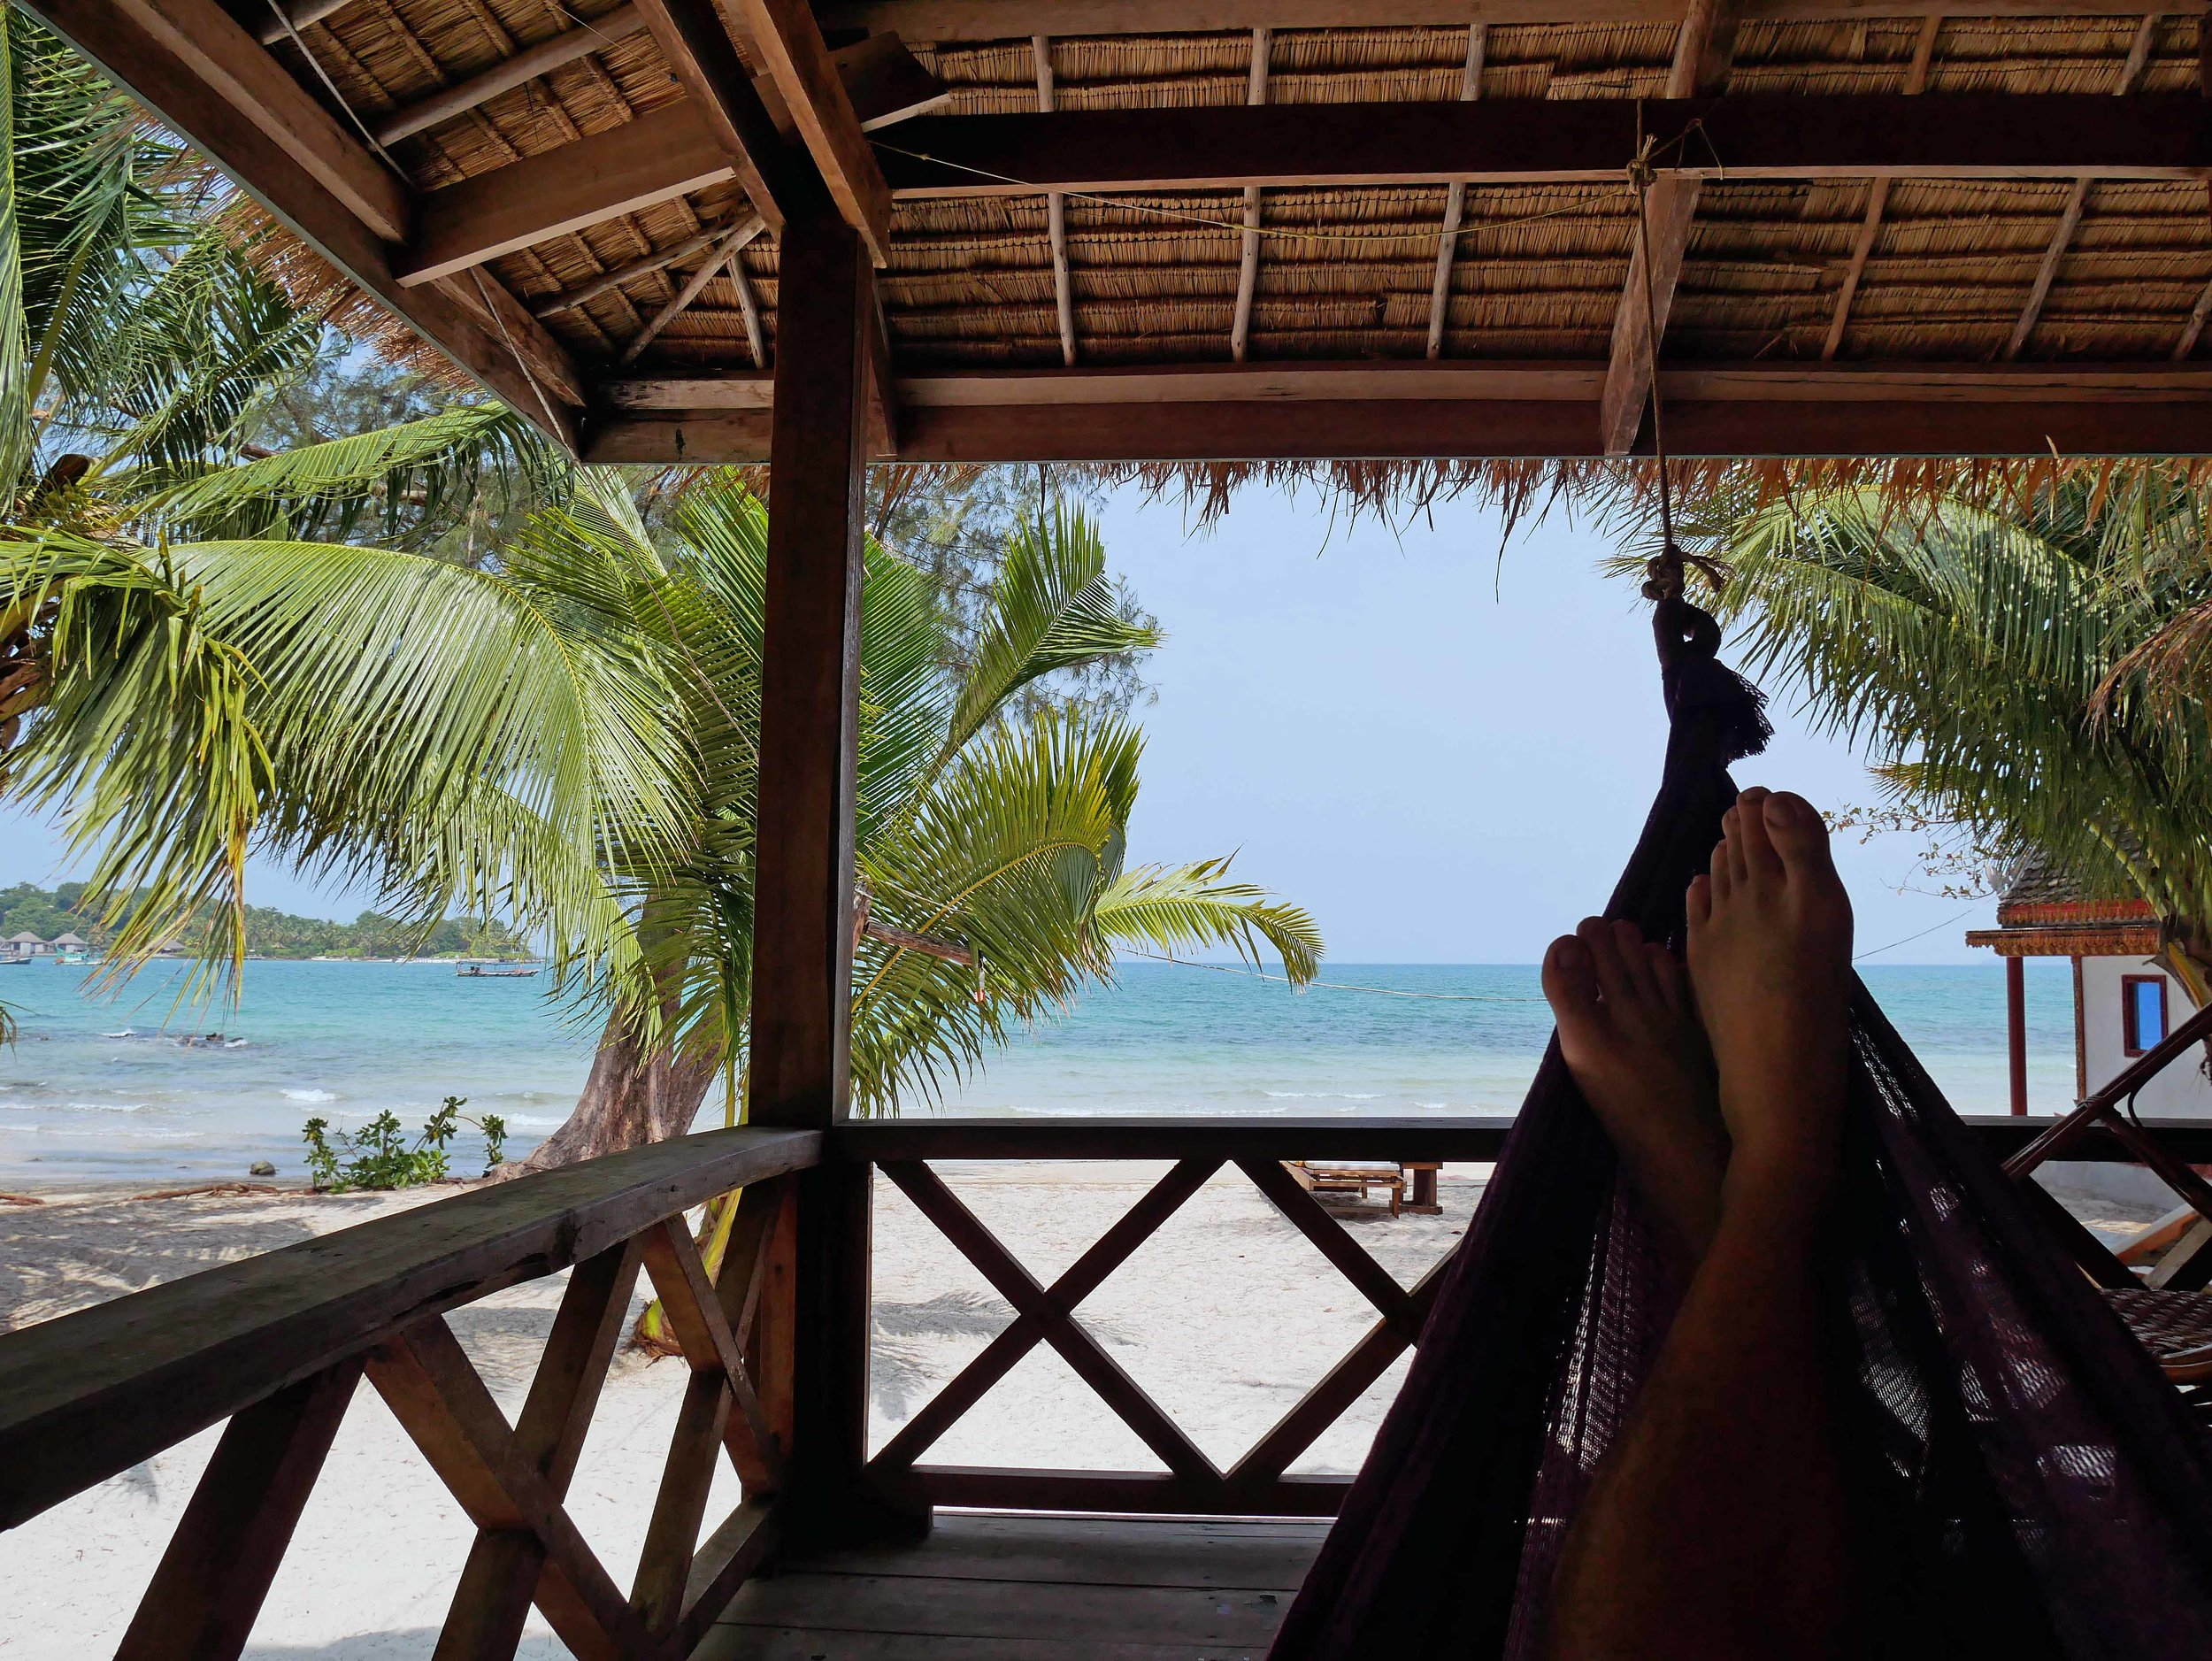 Our week on Koh Rong allowed for plenty of time for rest, reflection and Vitamin D (March 2-9).